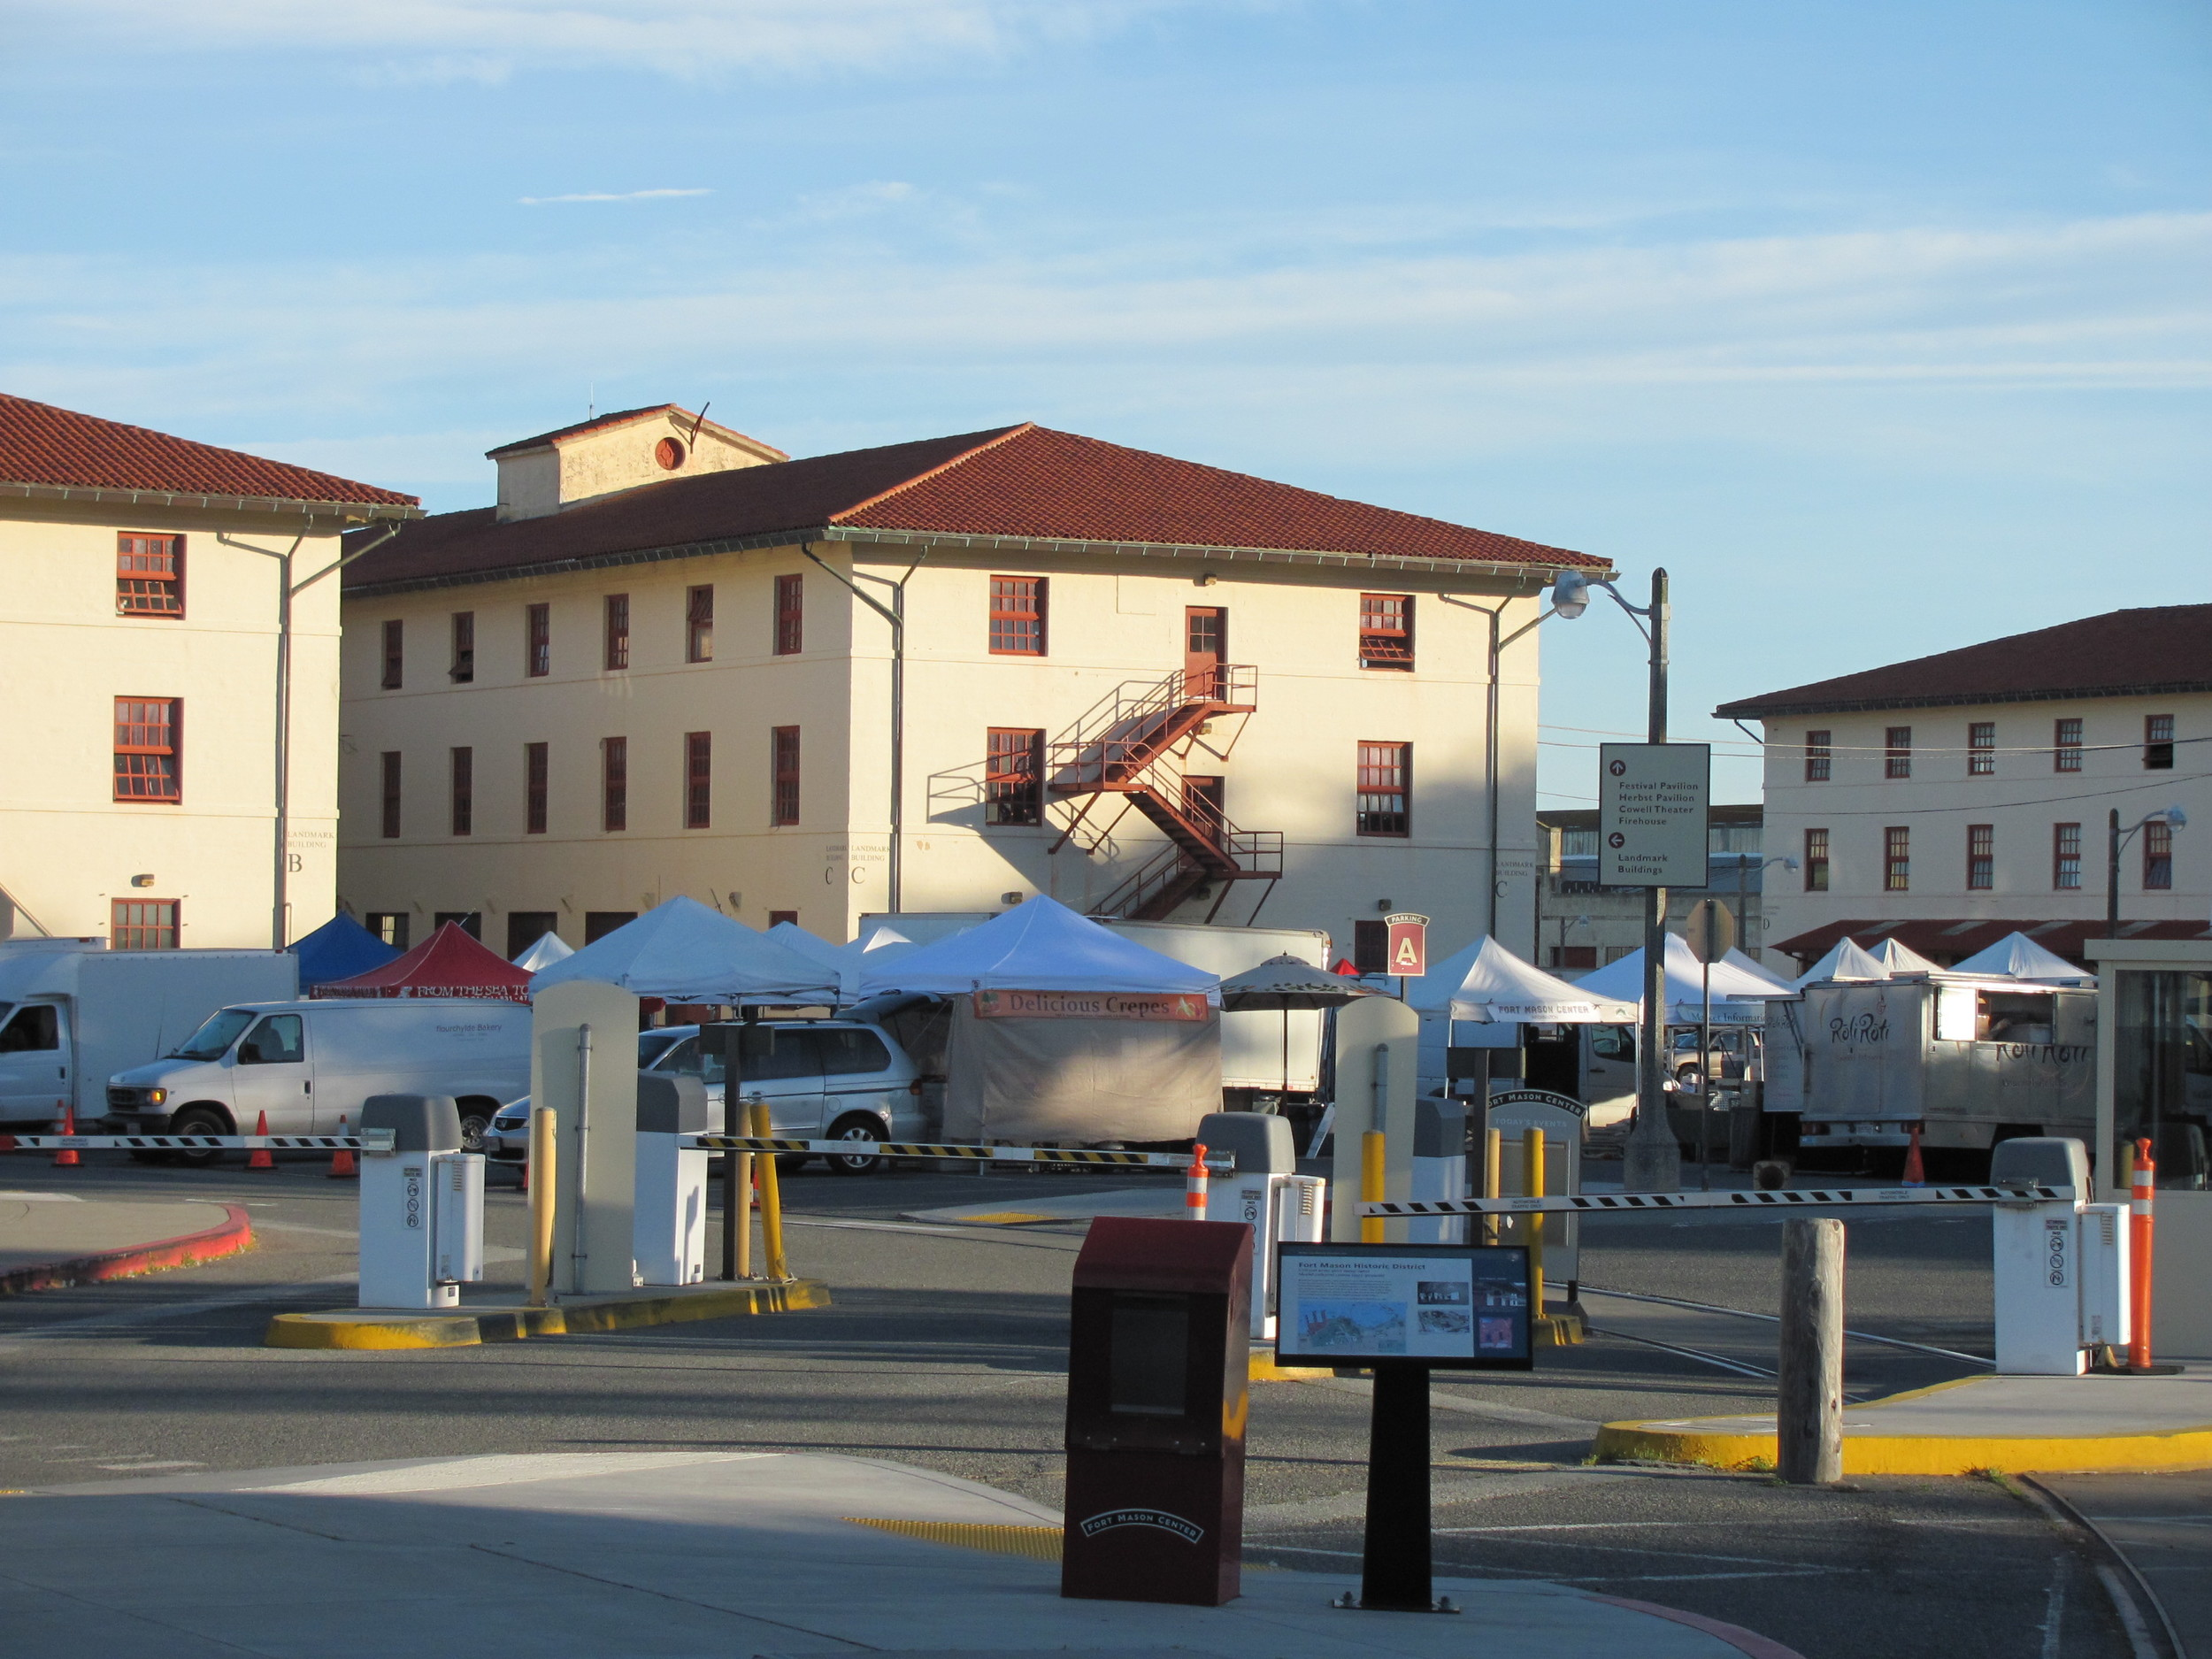 San Francisco: Farmers' Market setup at Fort Mason Center